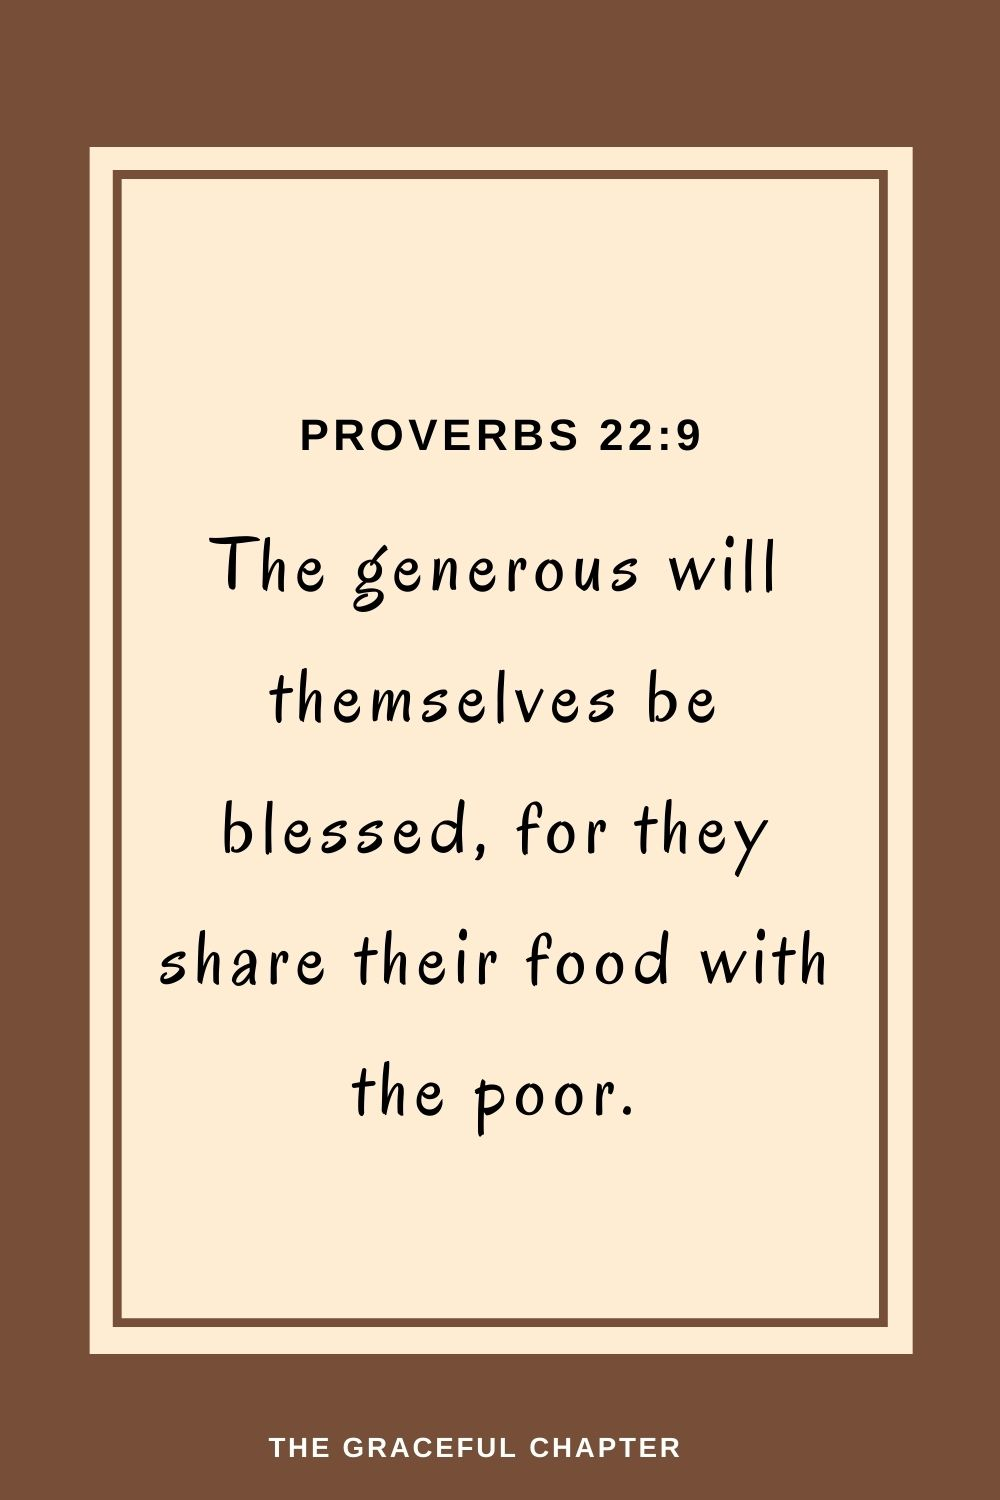 The generous will themselves be blessed, for they share their food with the poor. Proverbs 22:9